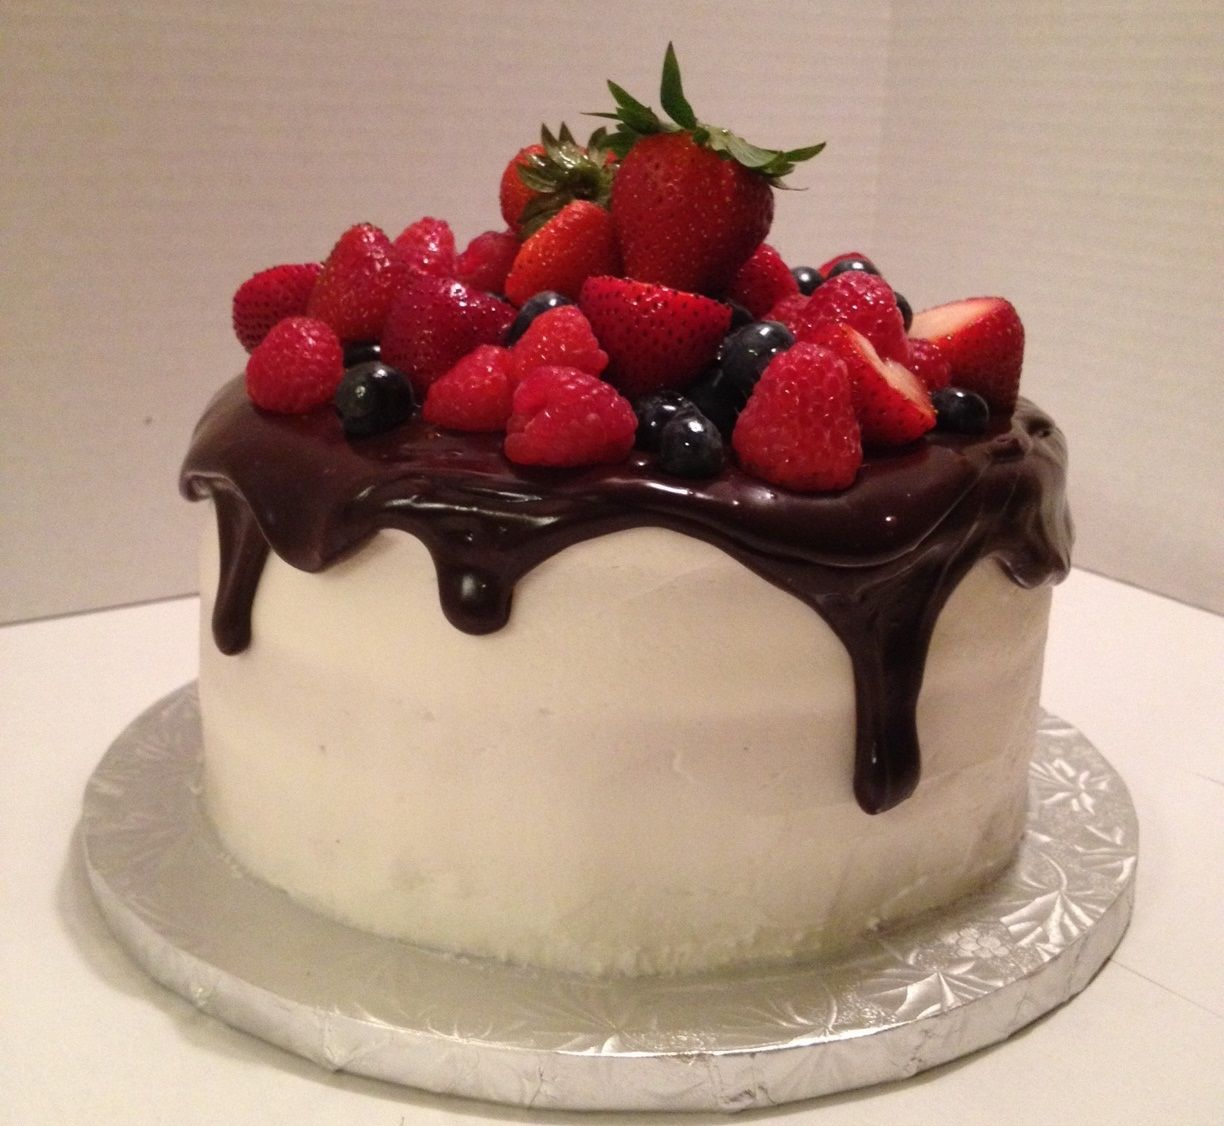 Cake With Fruit Pinterest : Fresh Fruit Birthday Cake - Fresh fruit birthday cake iced ...